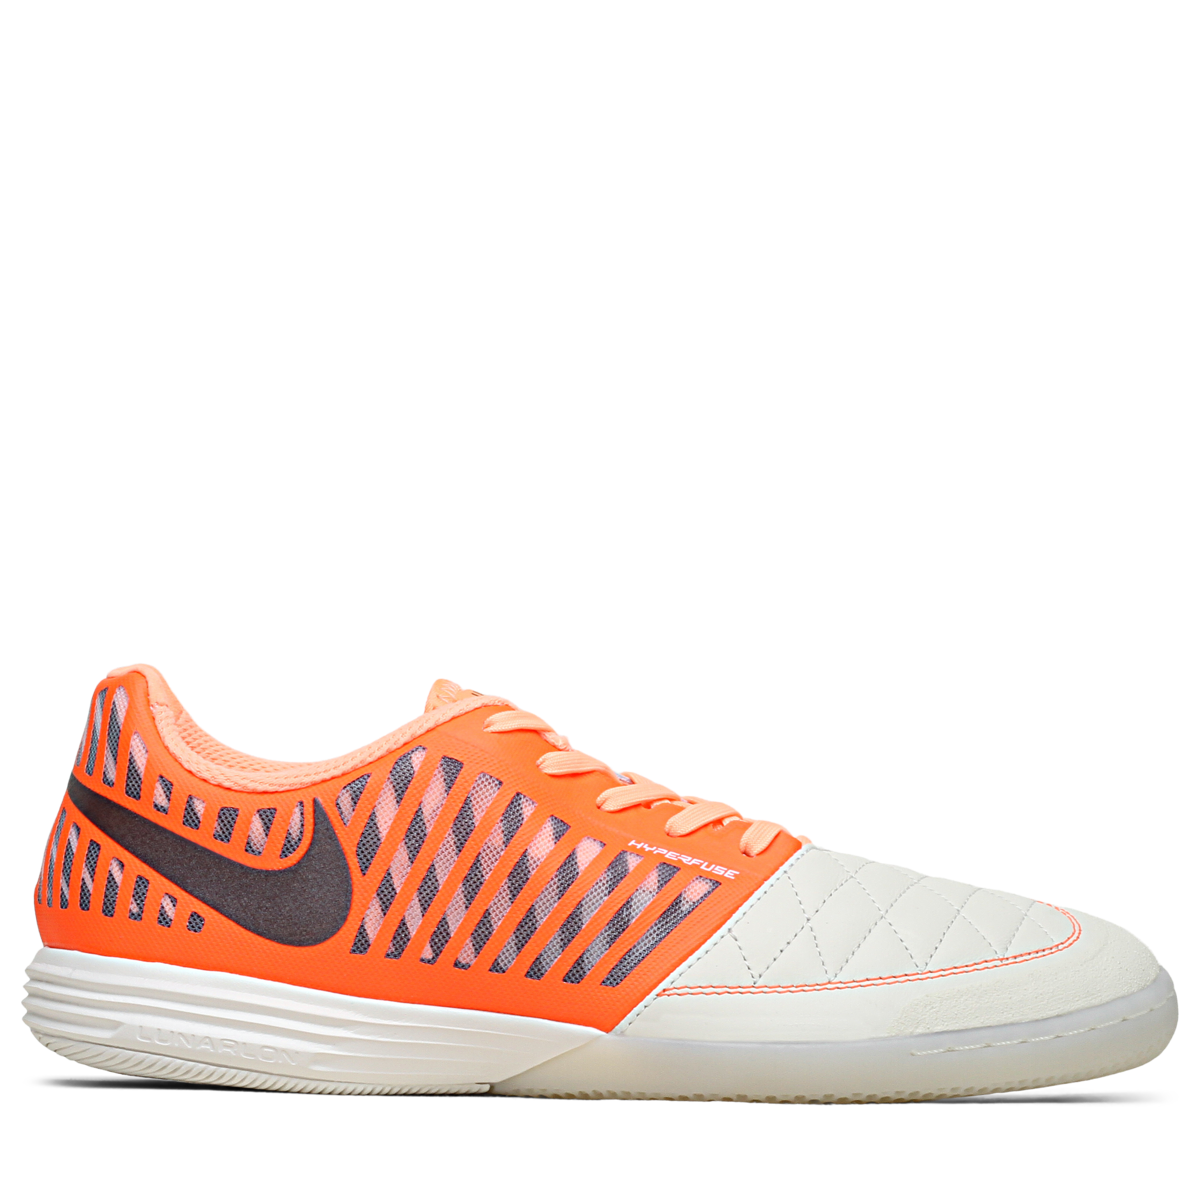 Nike – Lunar Gato II IC – Orange